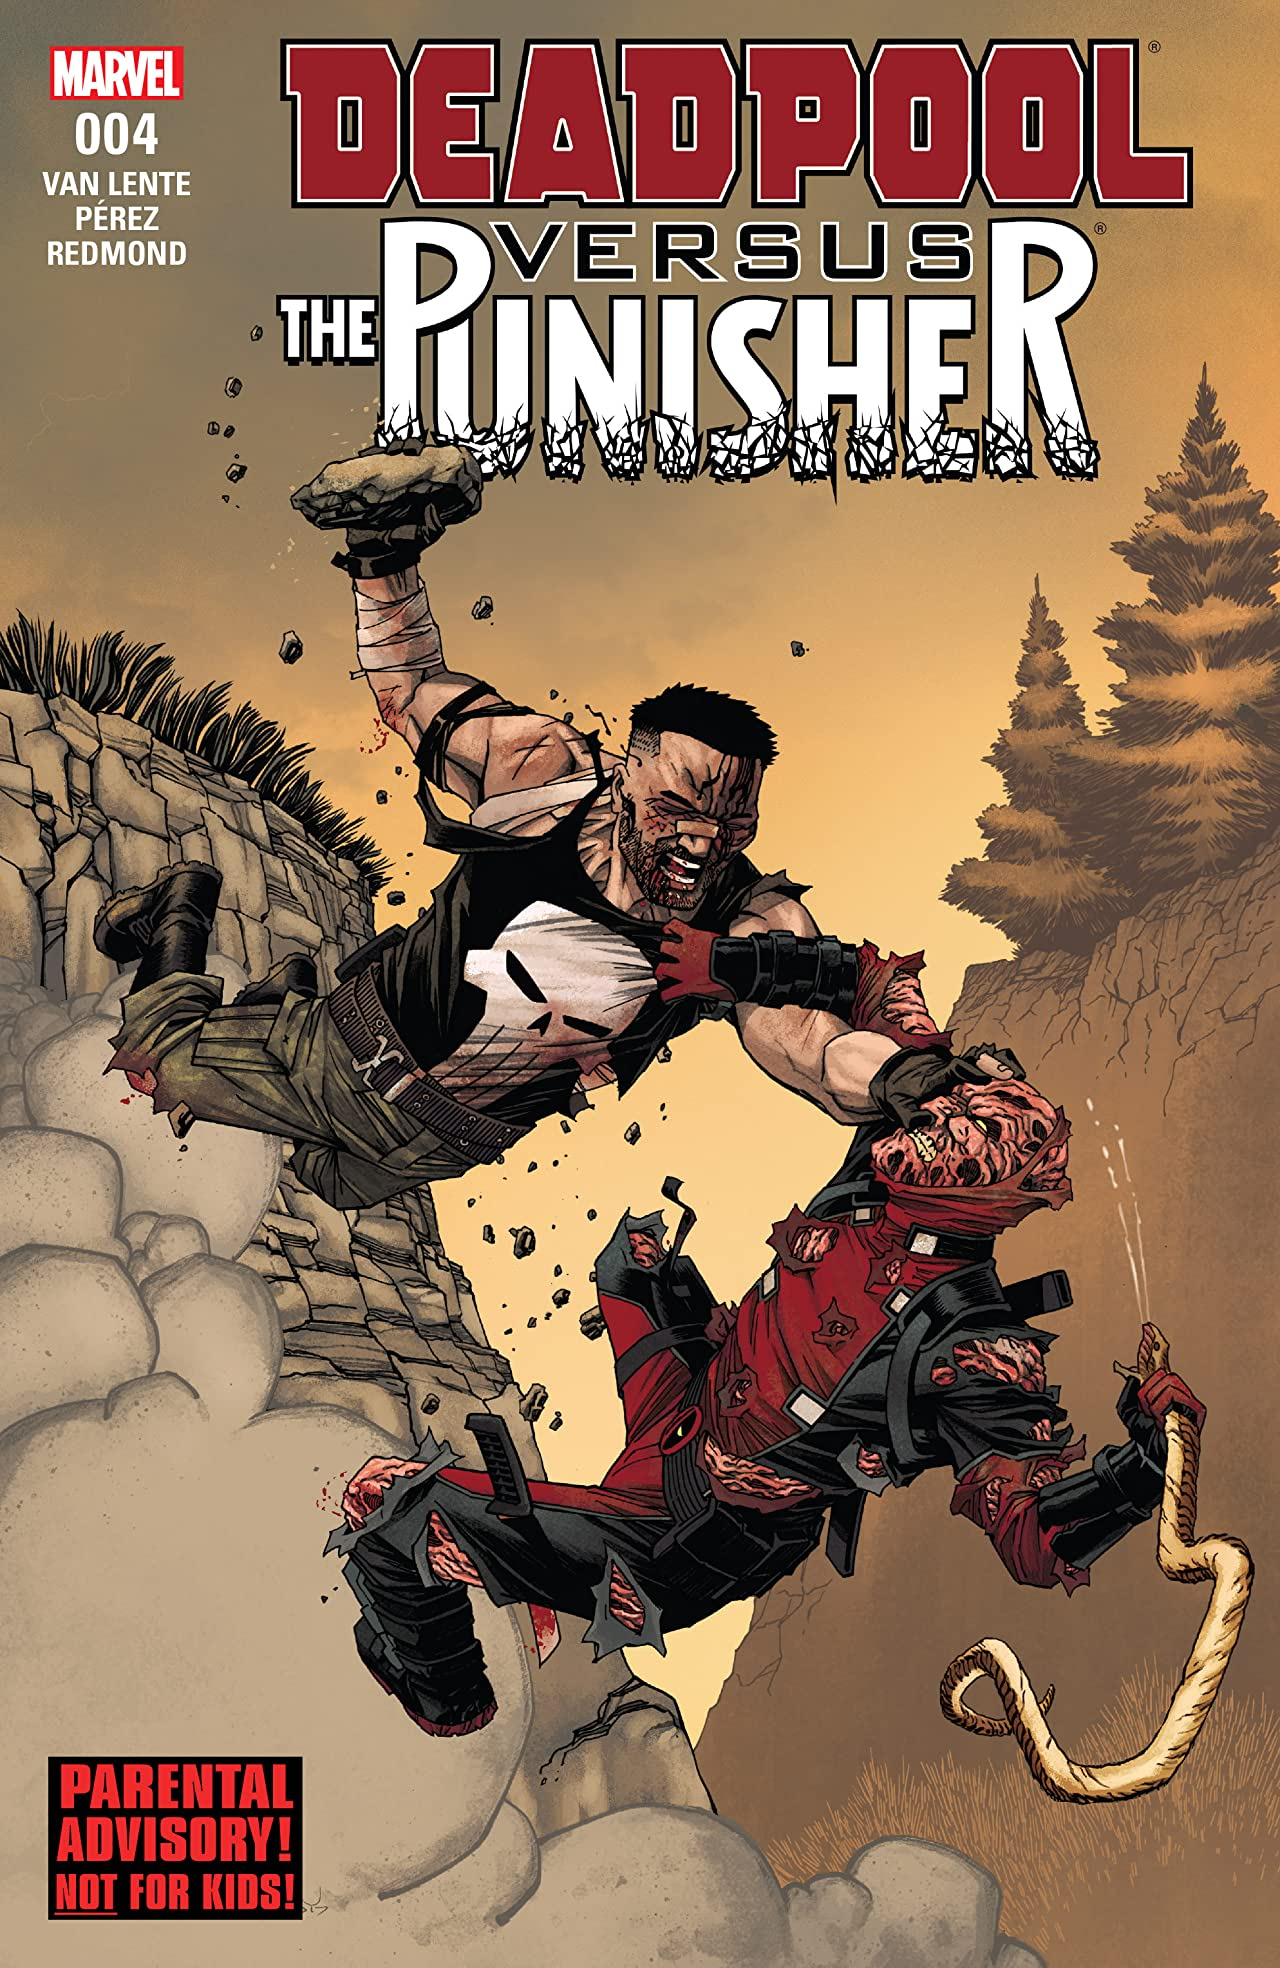 Deadpool vs. The Punisher (2017) #4 (of 5)